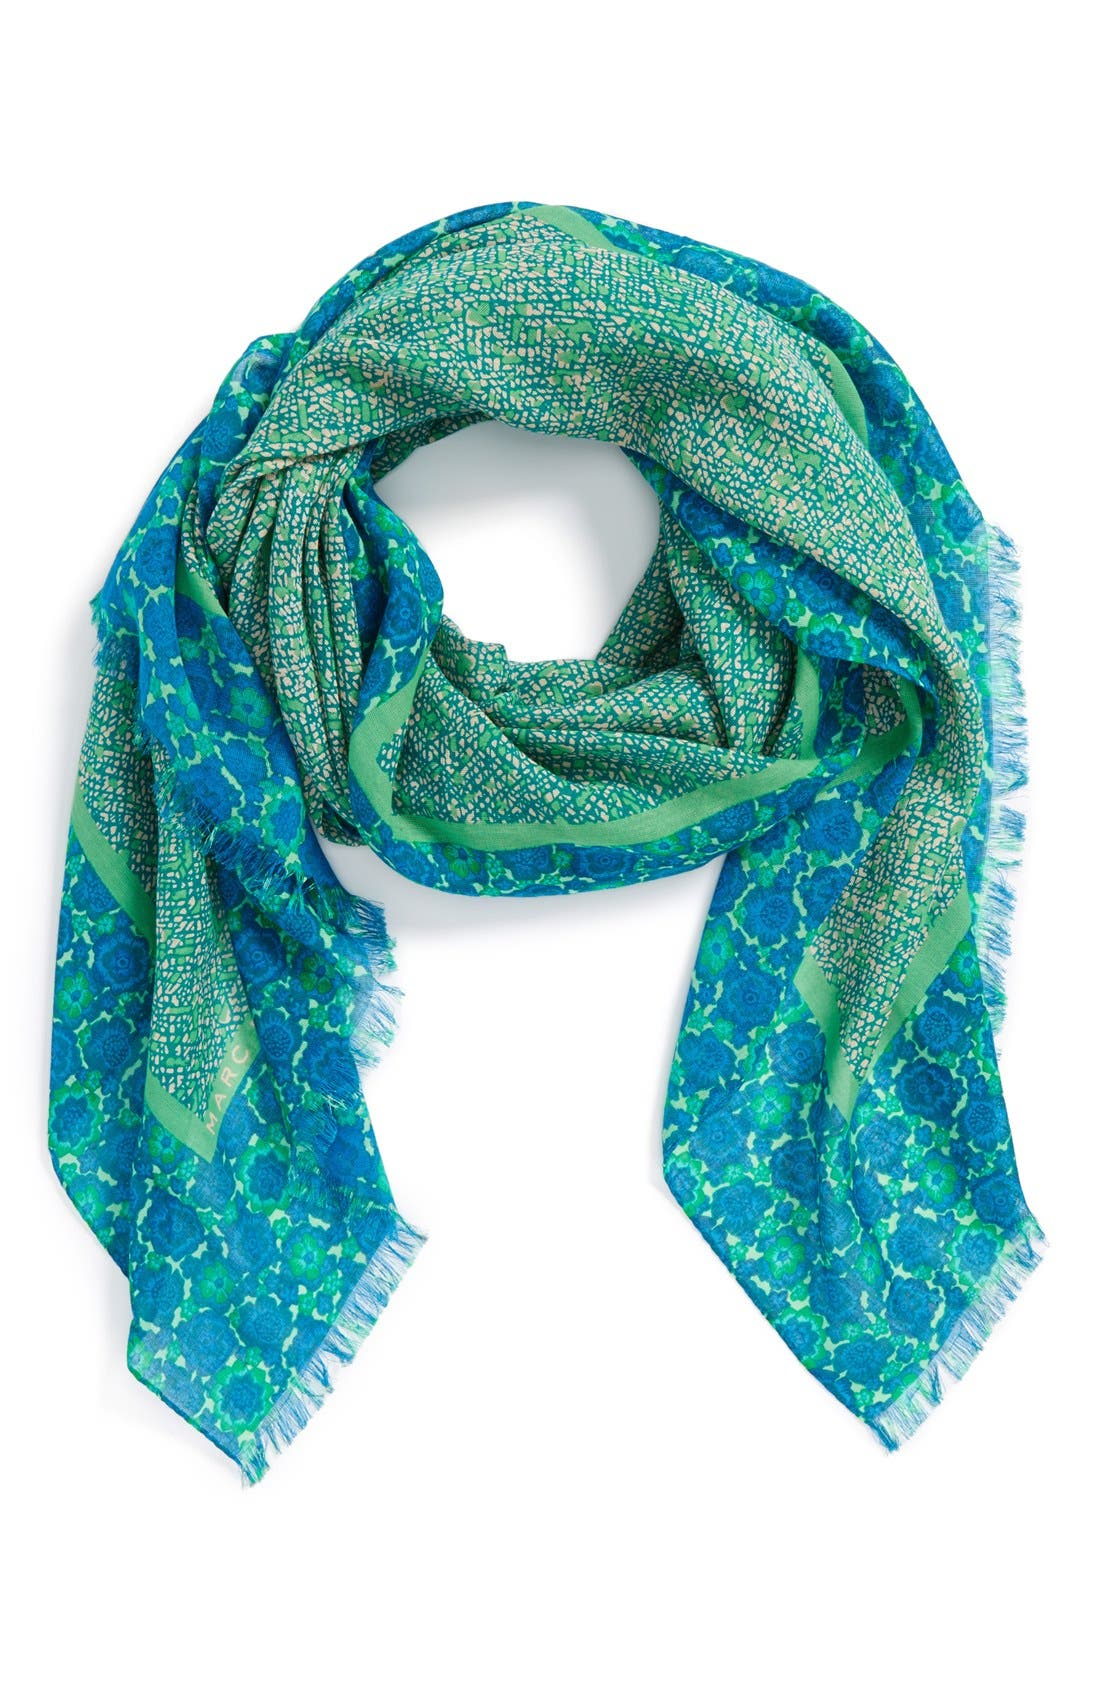 Main Image - MARC BY MARC JACOBS 'Karoo & Floral' Cotton Print Scarf